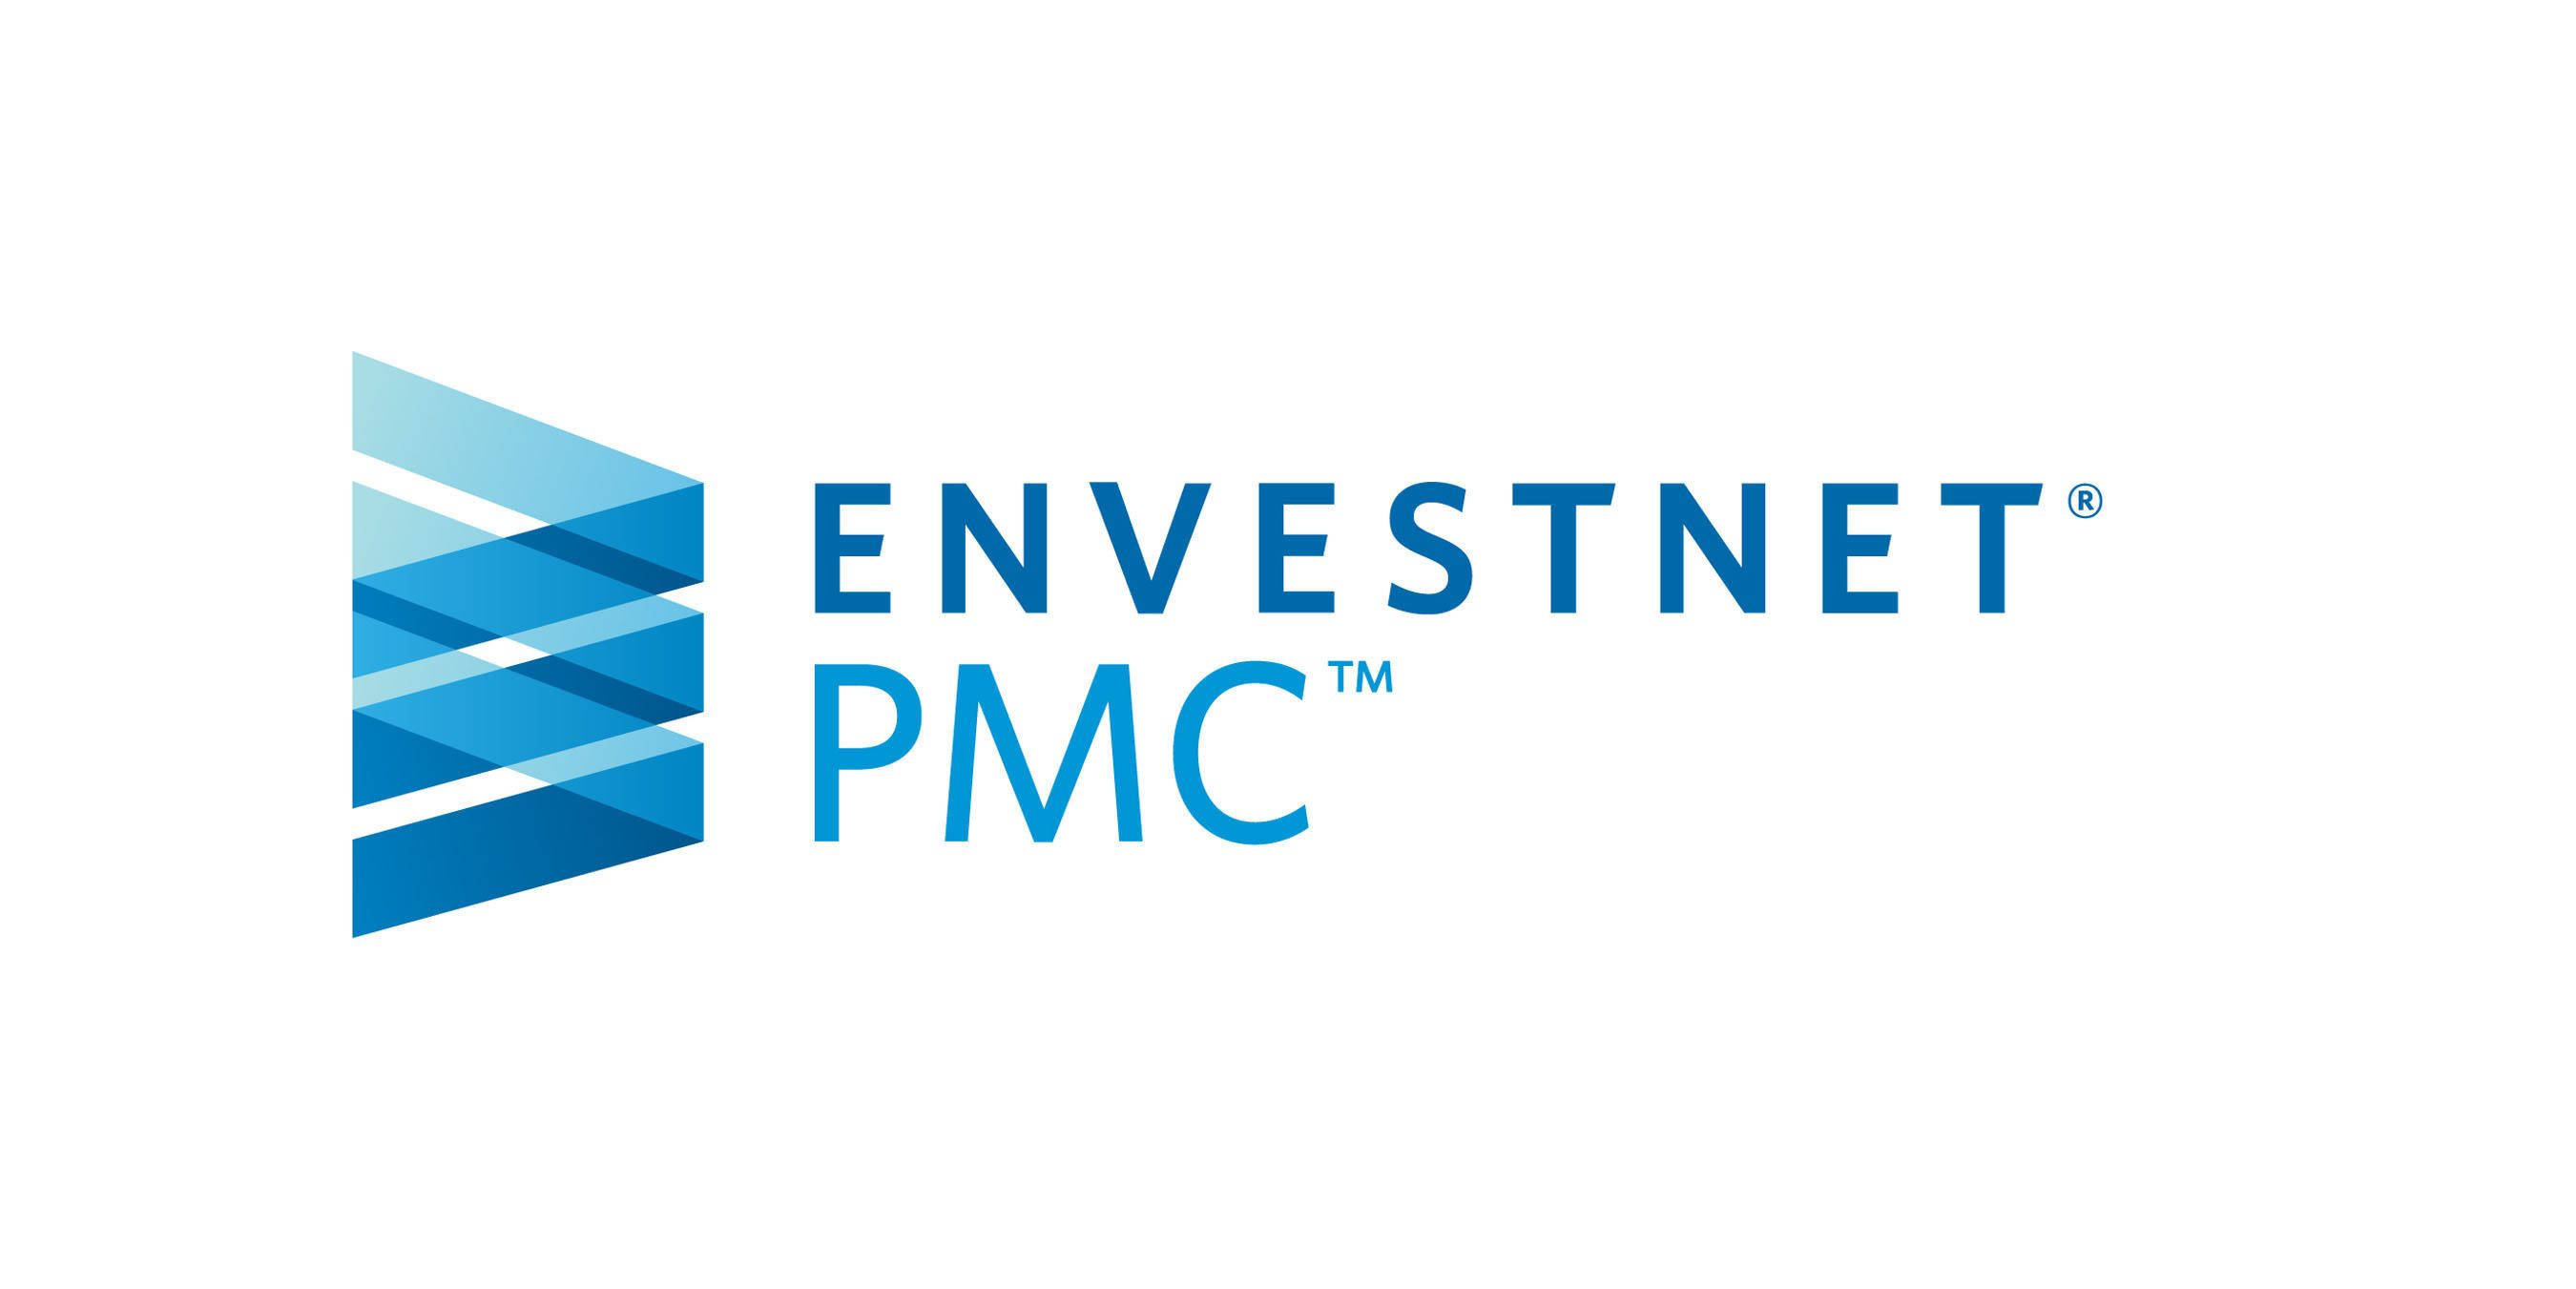 Envestnet | PMC provides independent advisors, broker-dealers, and institutional investors with the research, ...